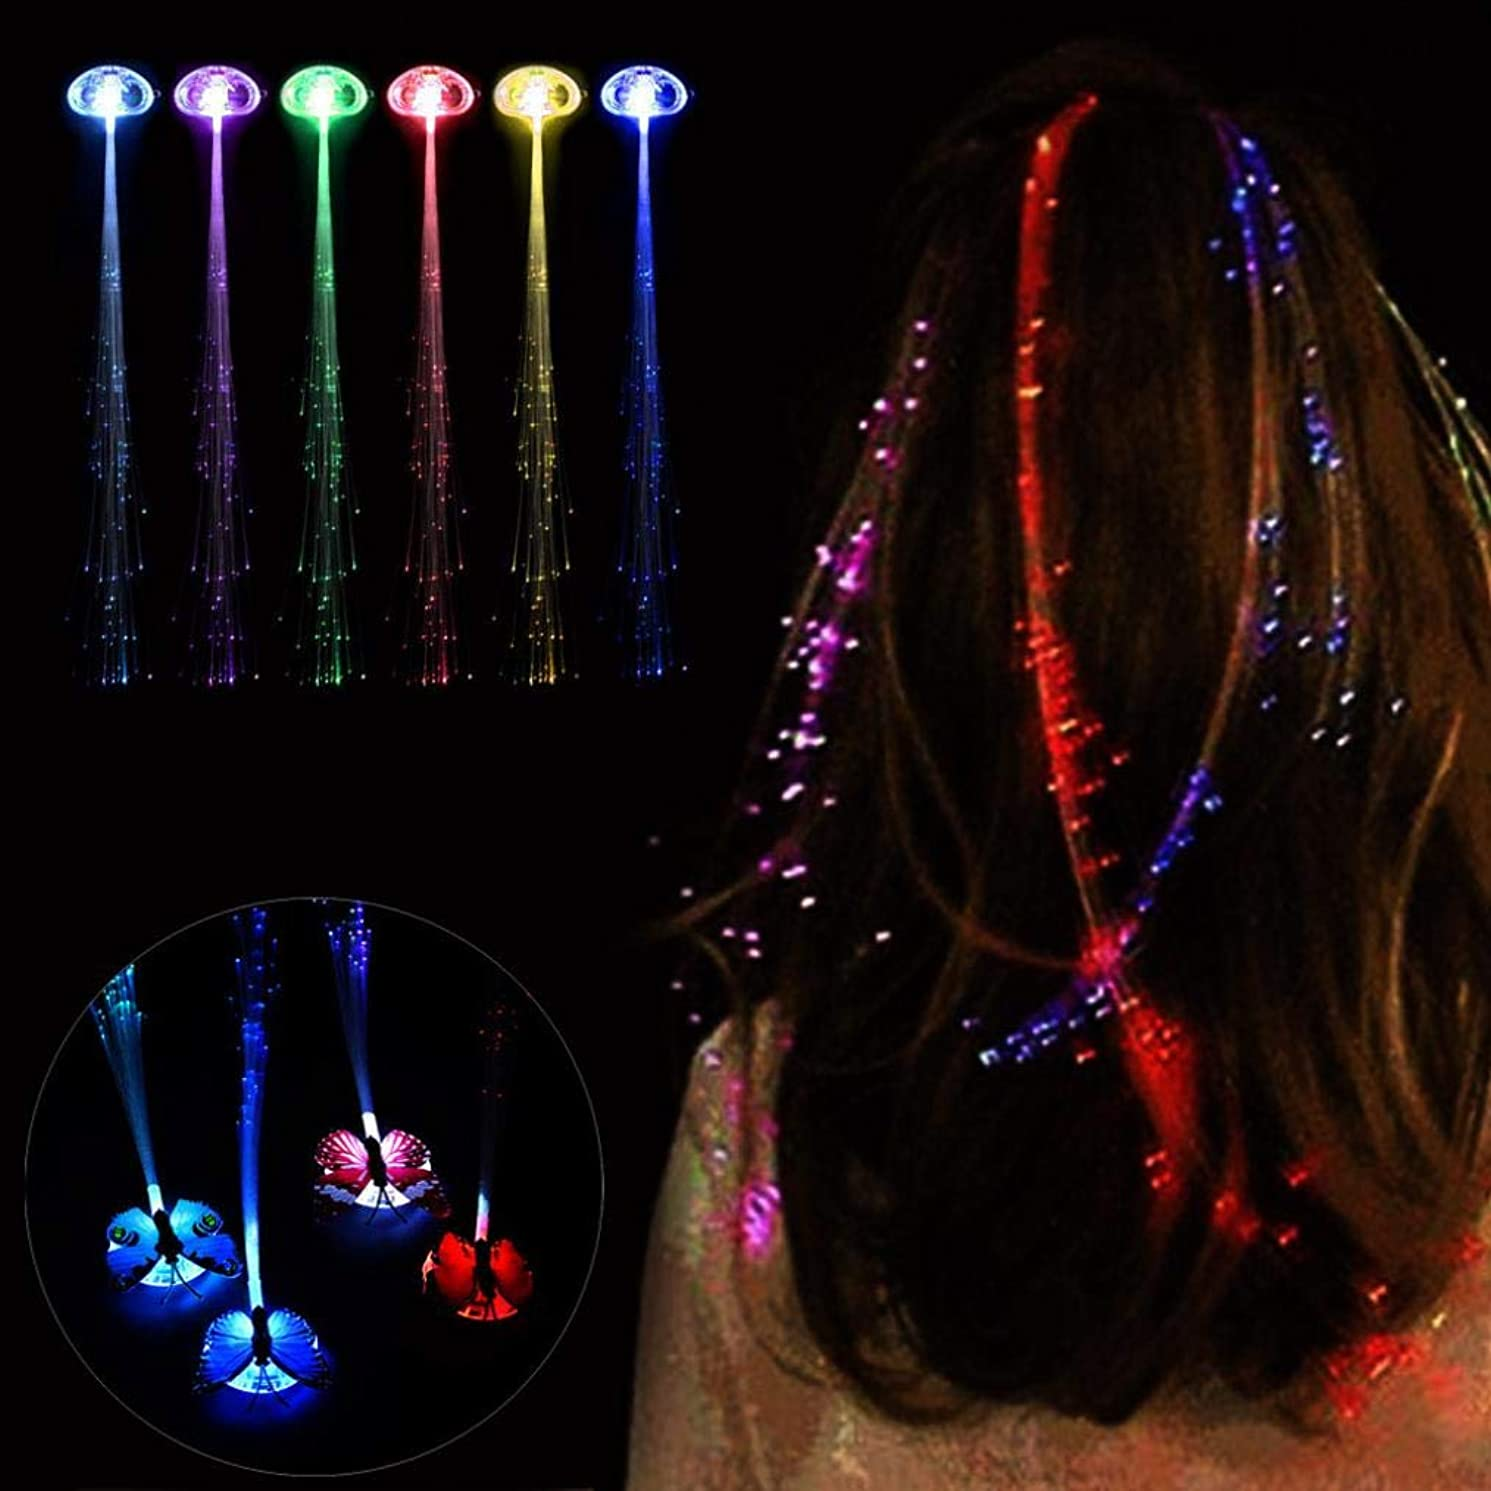 Gotian Butterfly LED Clip Hairpin Wigs Glowing Flash Ligth Hair Braid Christmas Birthday Toy